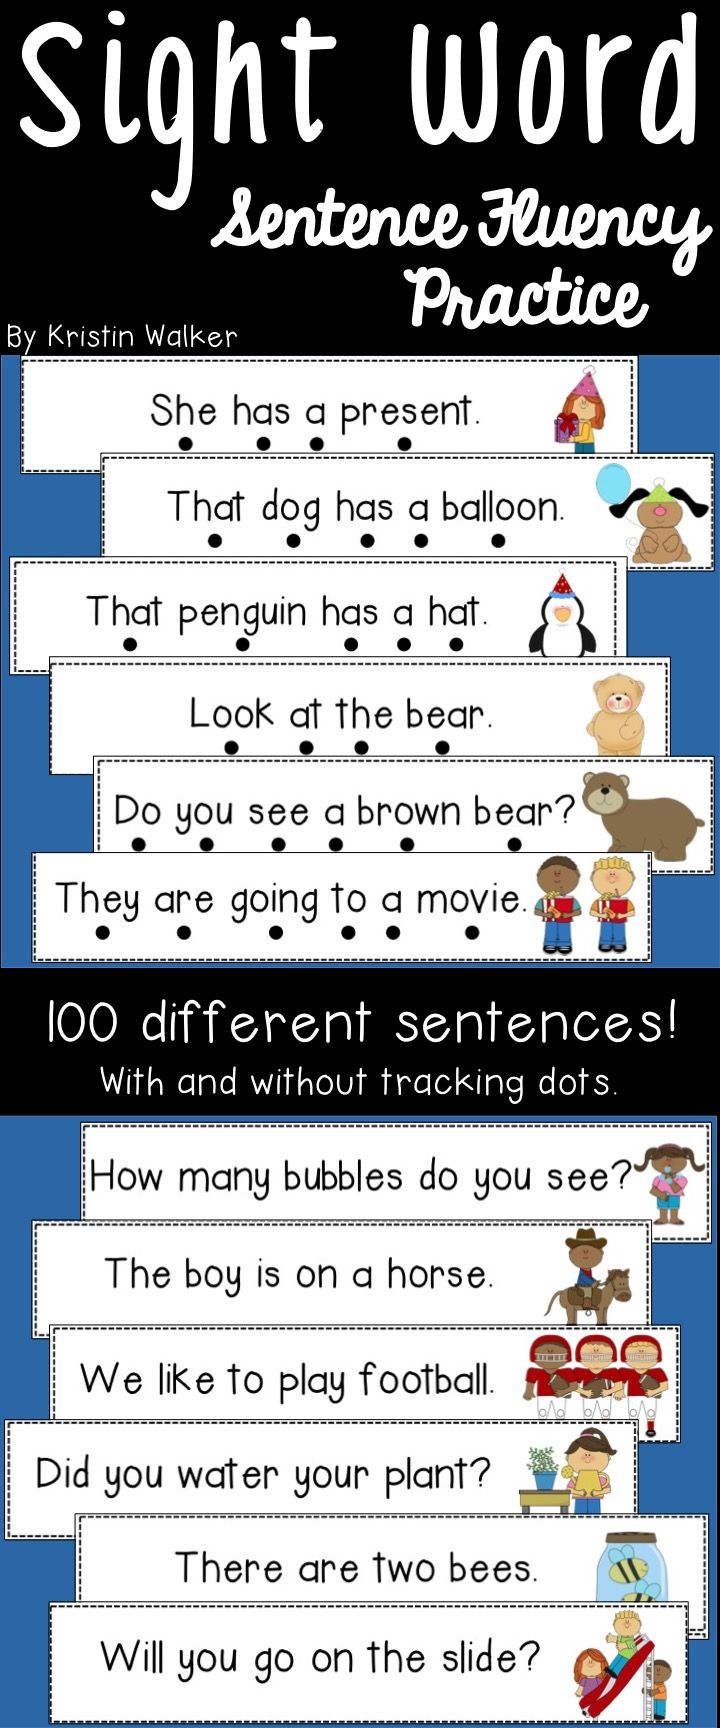 Use these sentence fluency cards with your students to practice fluency, sight words, one-to-one correspondence, decoding simple words, using picture clues, using expression, etc.